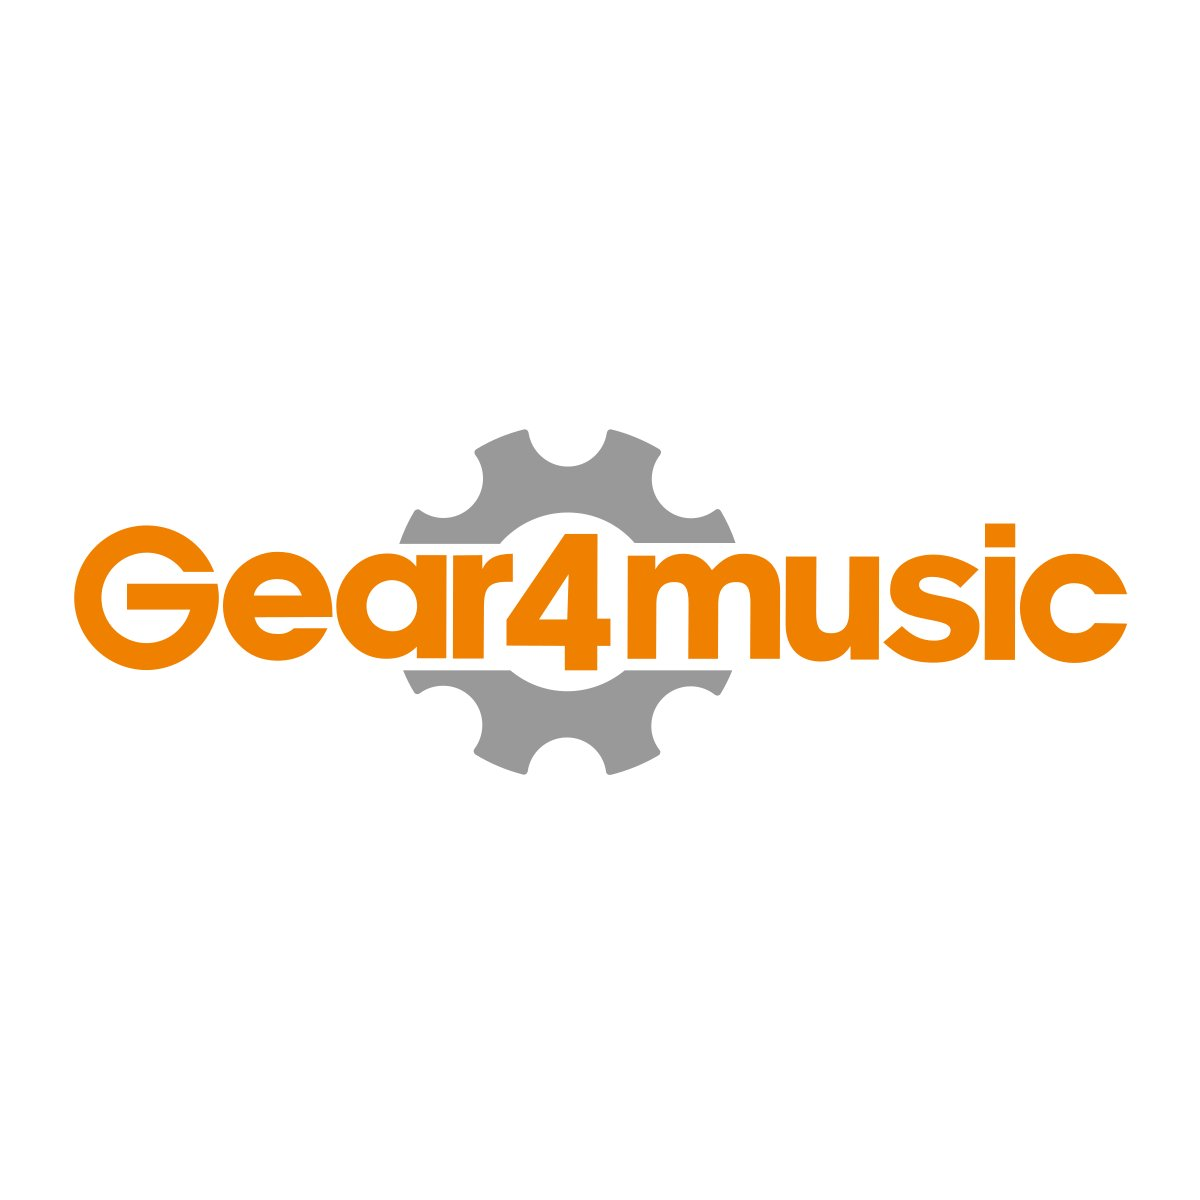 GDP-200 Piano de Cauda Digital Gear4music com Banco de Gear4music